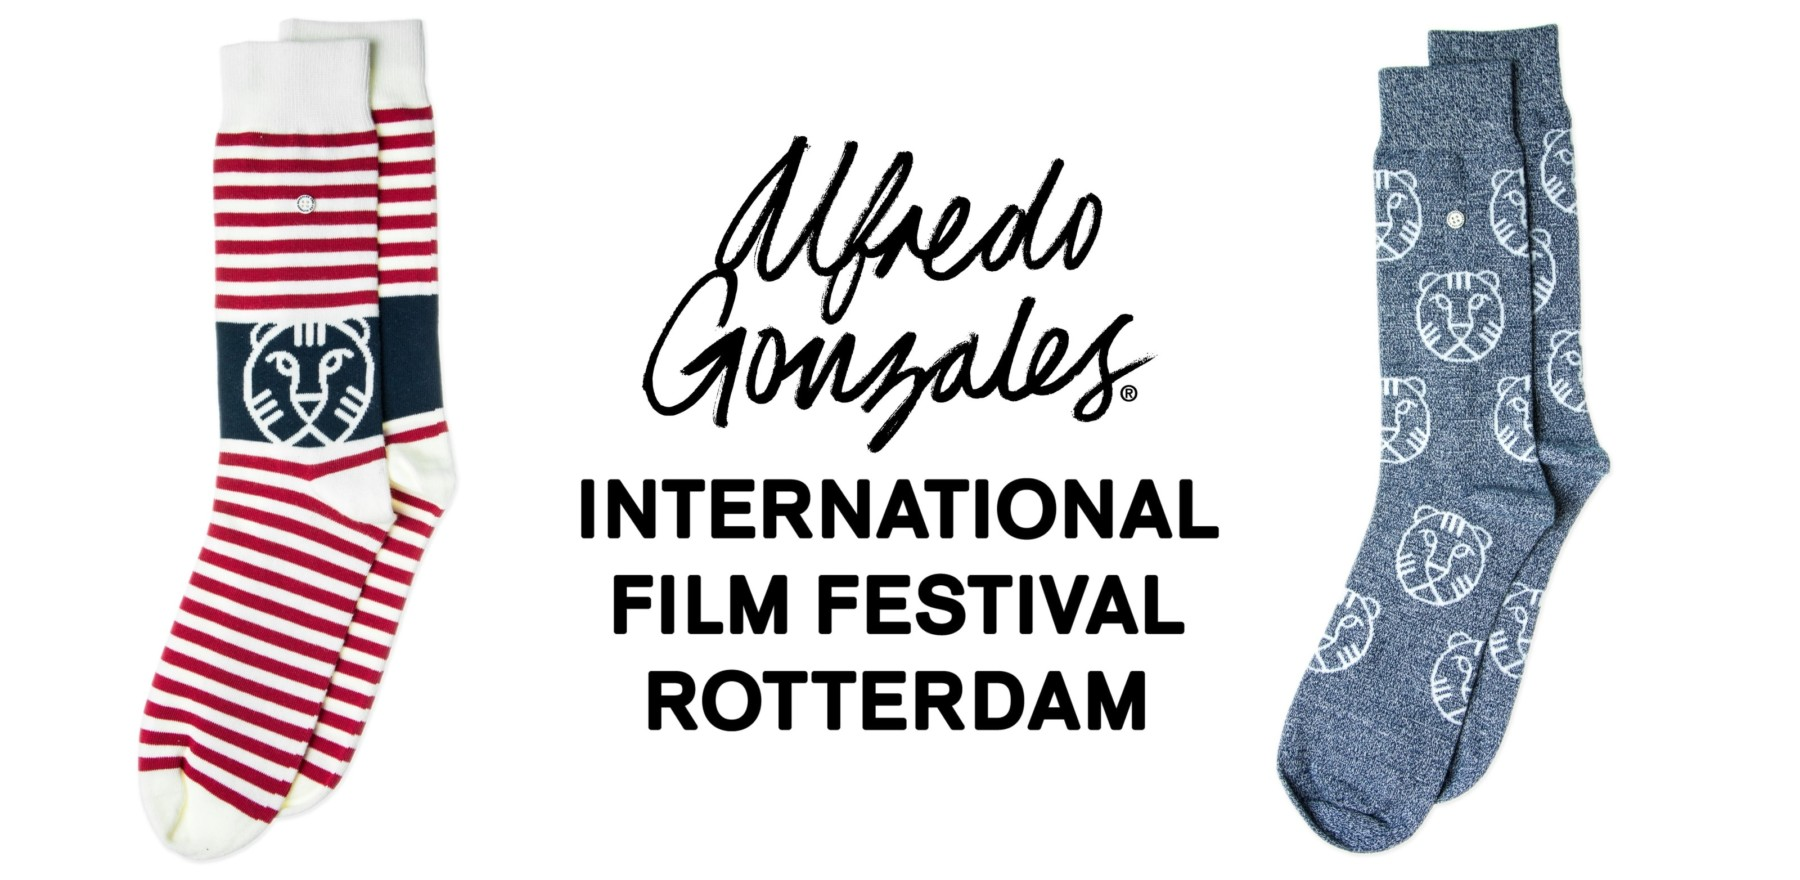 International Film Festival Rotterdam x Alfredo Gonzales